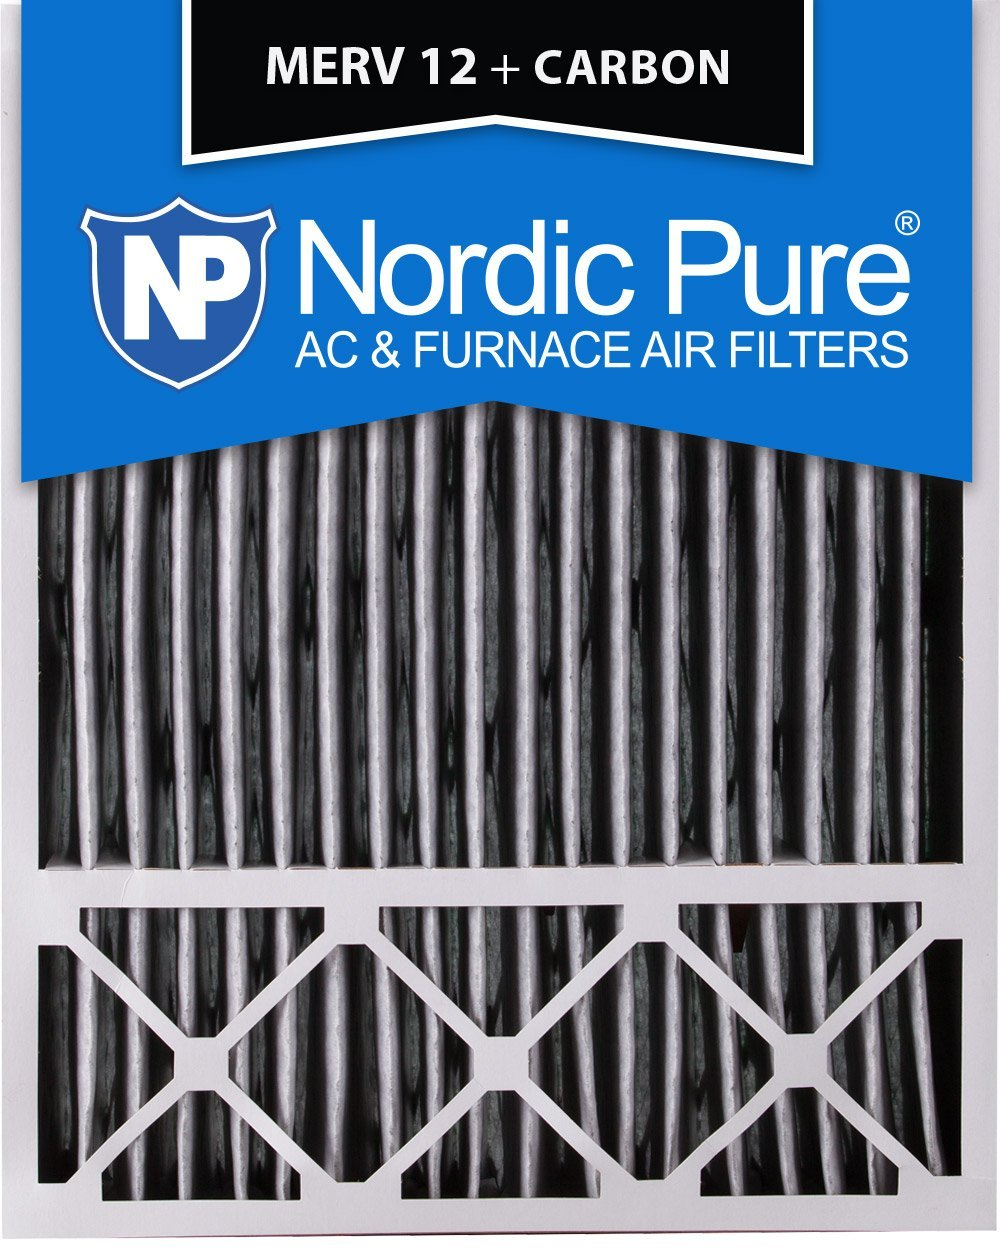 Nordic Pure 20x25x5 (4-3/8 Actual Depth) Lennox X6673 Replacement MERV 12 Pleated Plus Carbon AC Furnace Air Filter, Box of 2